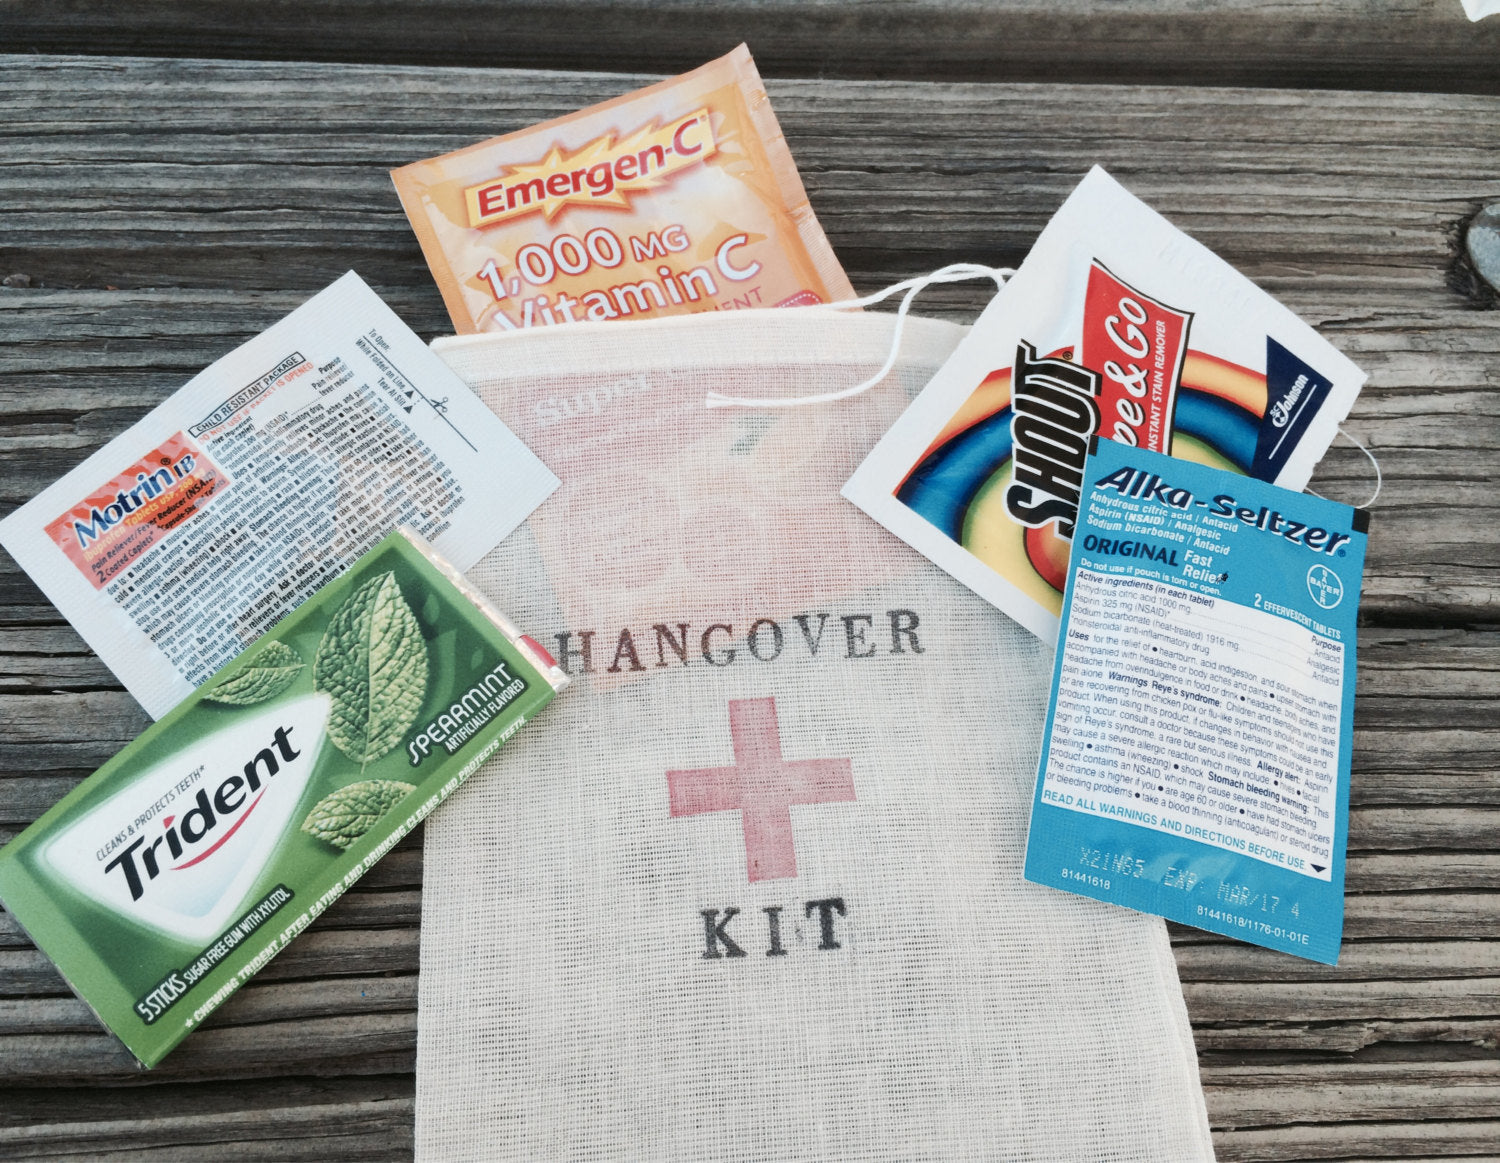 10 Hangover Kit bags, BAGS ONLY all inclusive hangover bag, hangover kit, pre-made hangover kit, complete hangover bags, welcome bags,